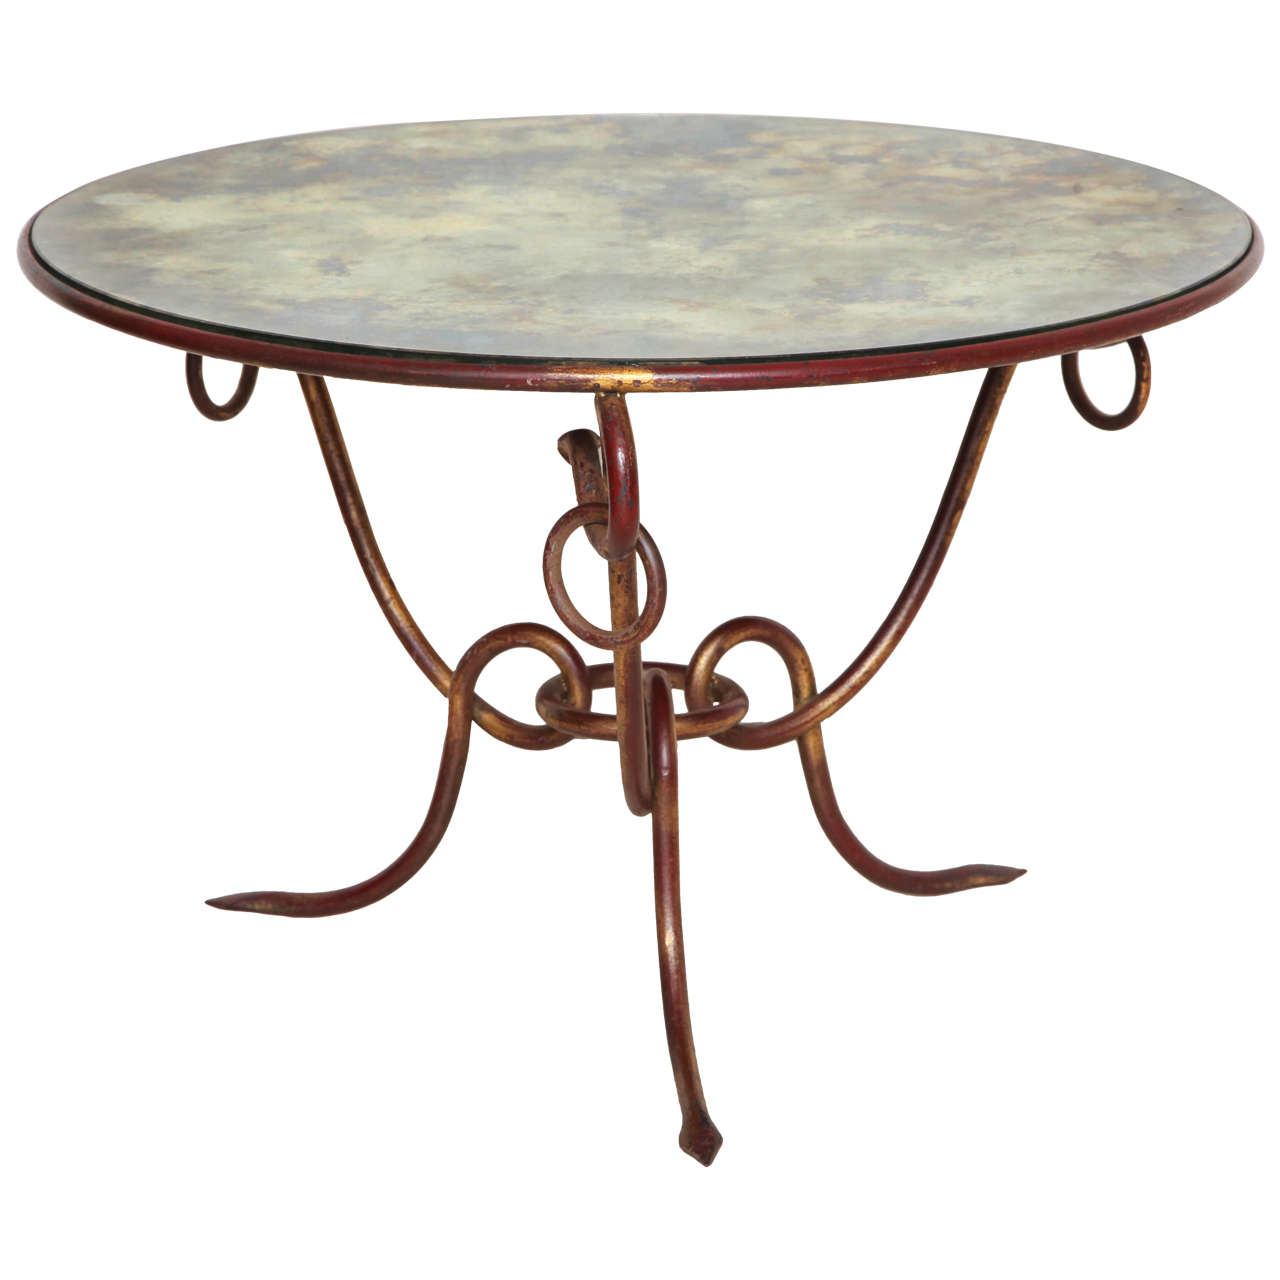 Iconic Round Gilt Iron Table With Mirrored Top By Rene Drouet France Circa 1940 At 1stdibs